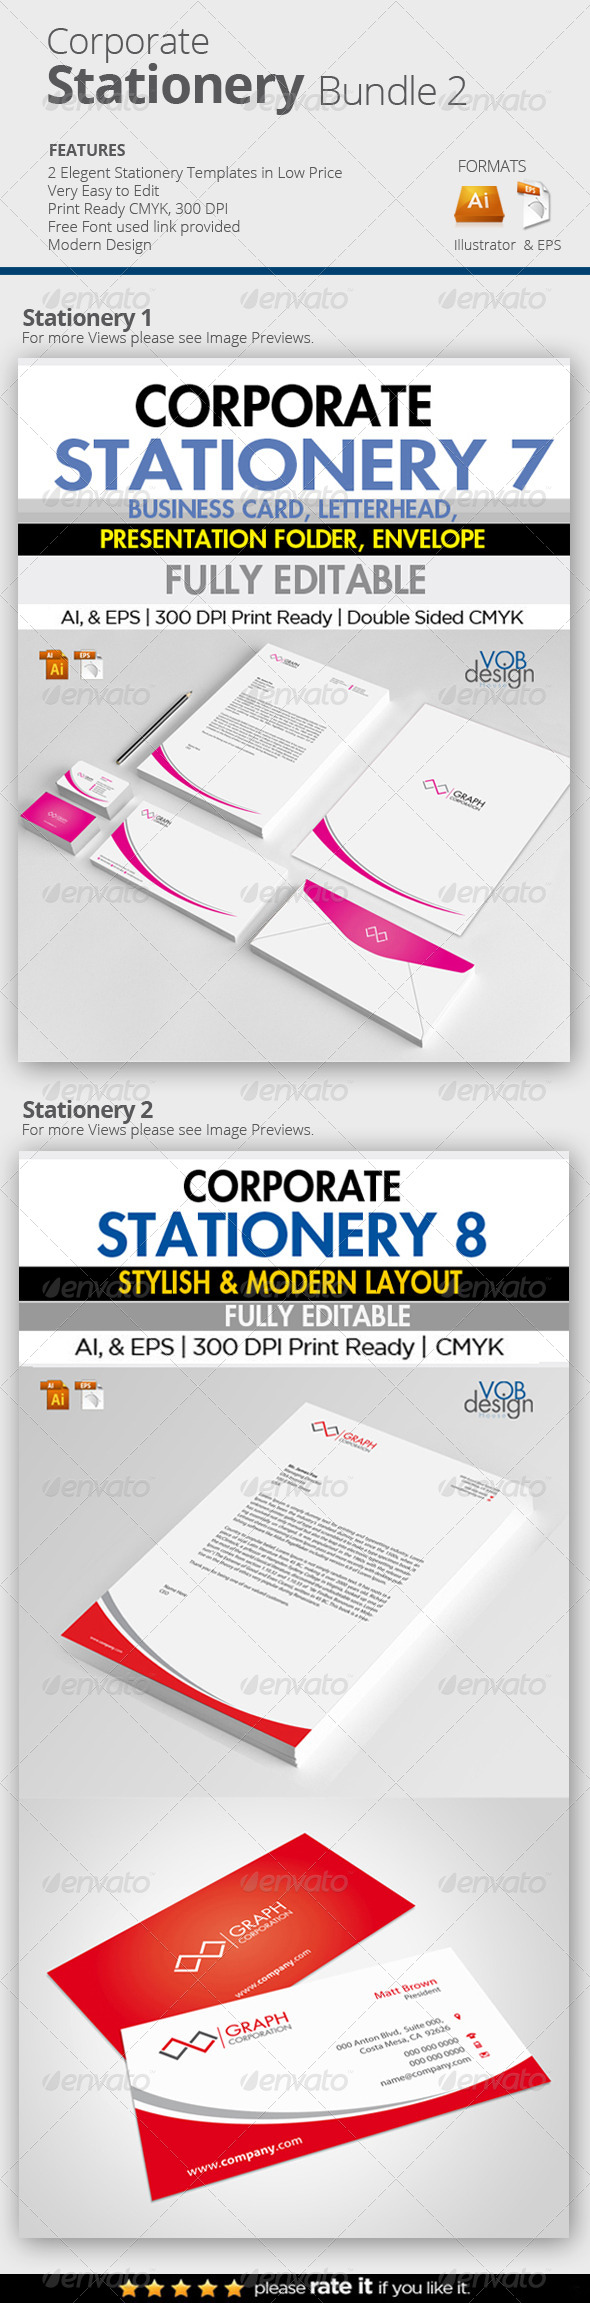 GraphicRiver Corporate Stationery Bundle 2 7287057